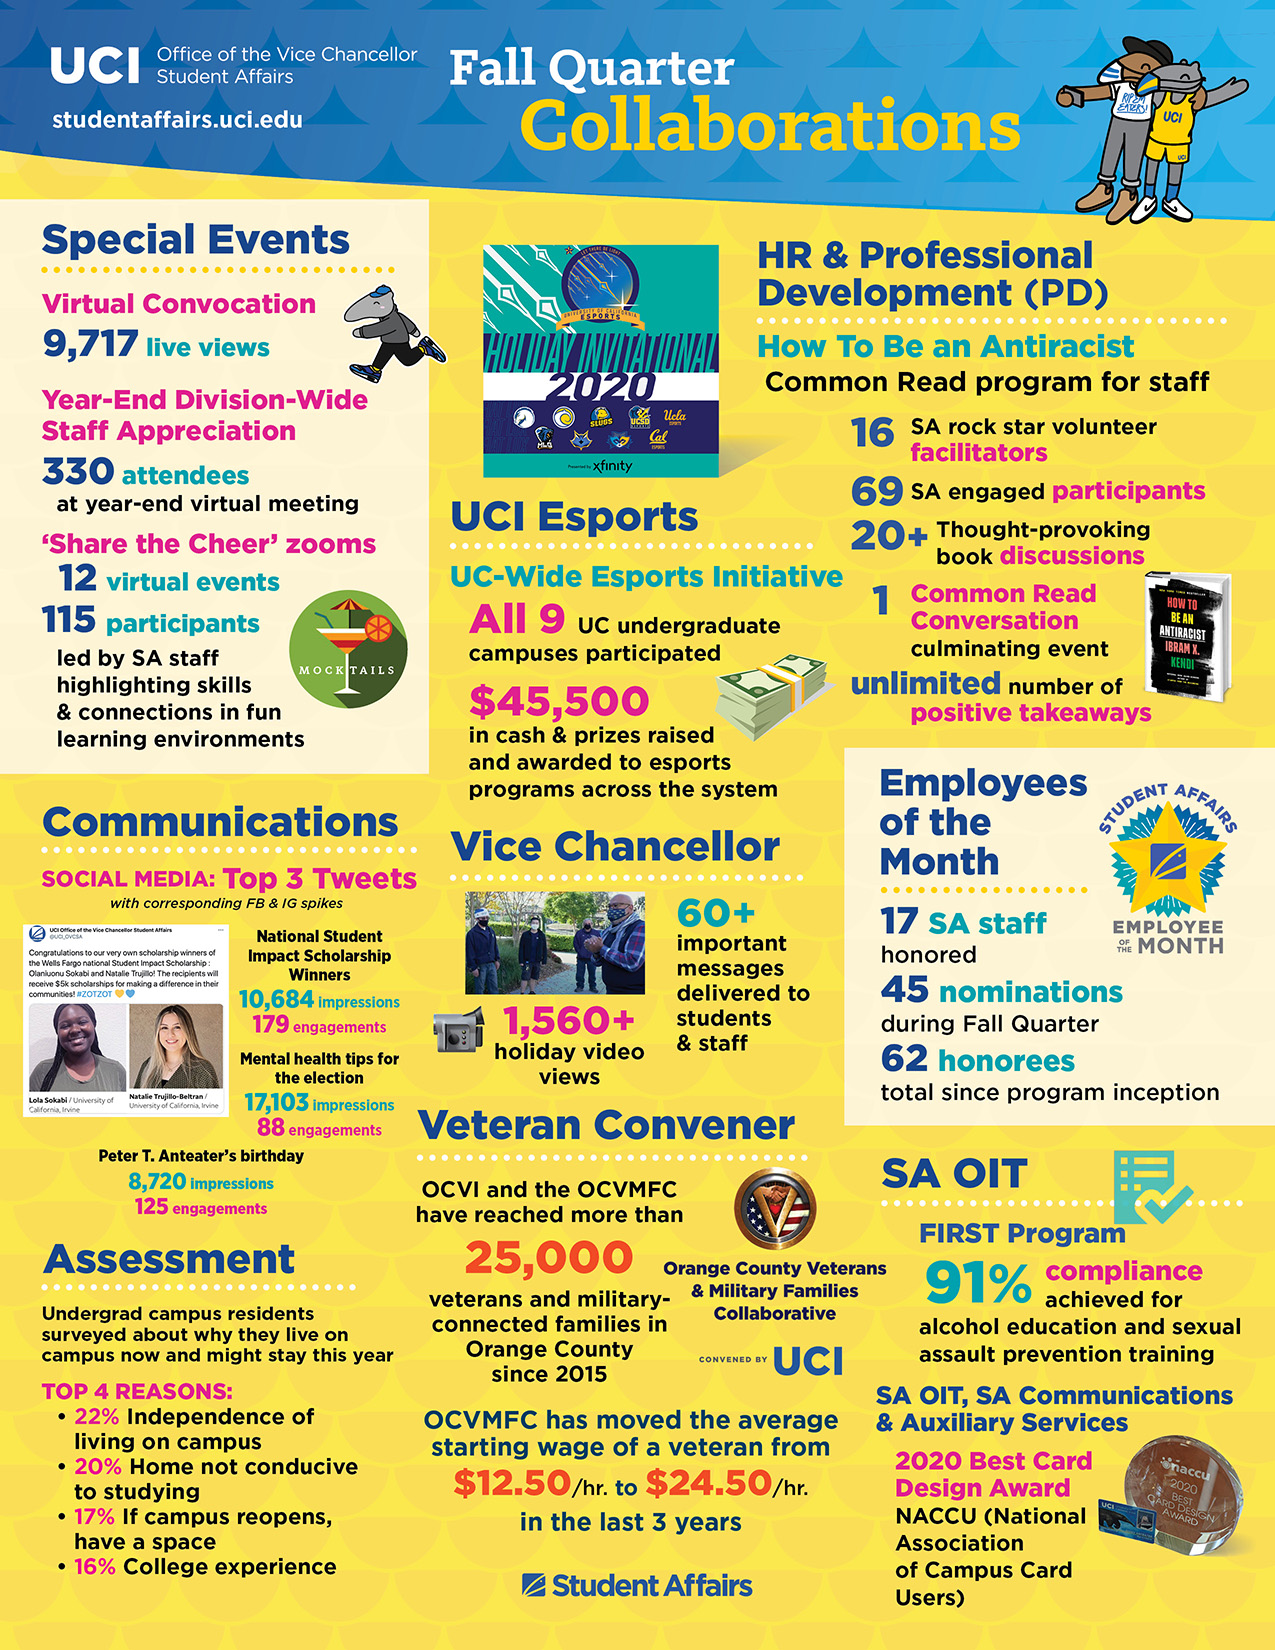 Office of the Vice Chancellor, Student Affairs Fall Quarter 2020 infographic